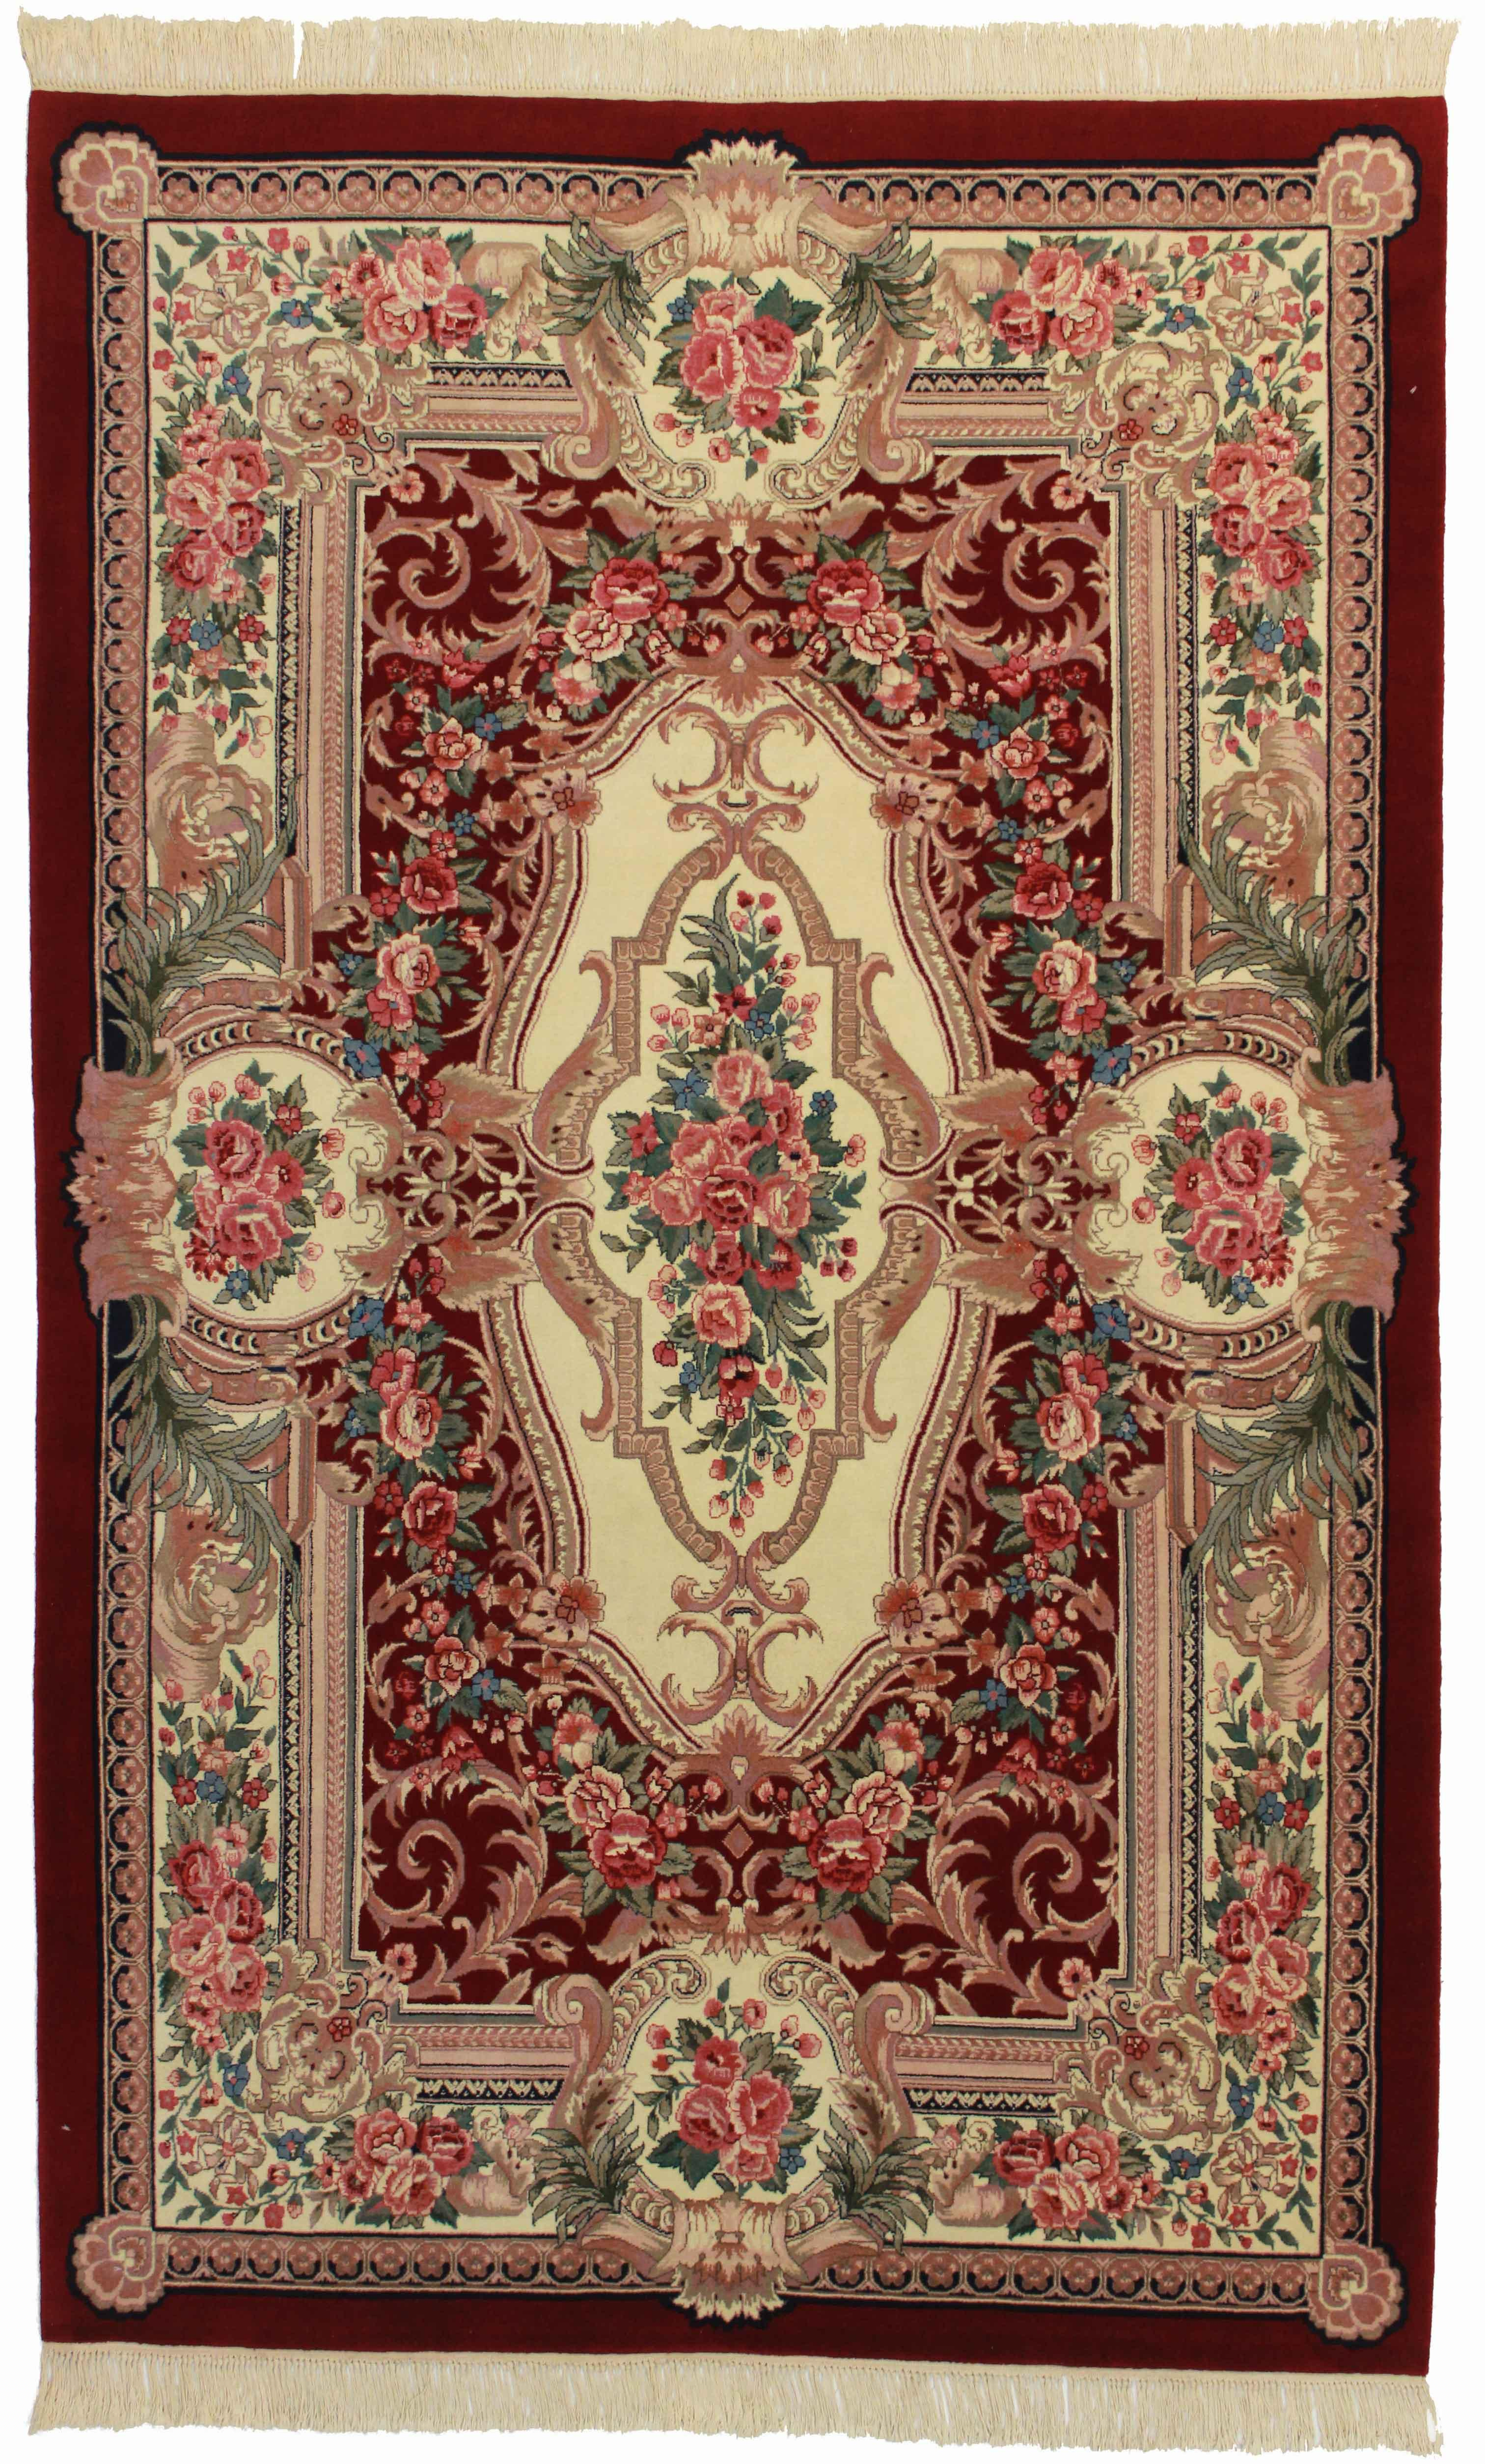 Hand Knotted Wool Chinese Rug 5 9 8 9 Chairish